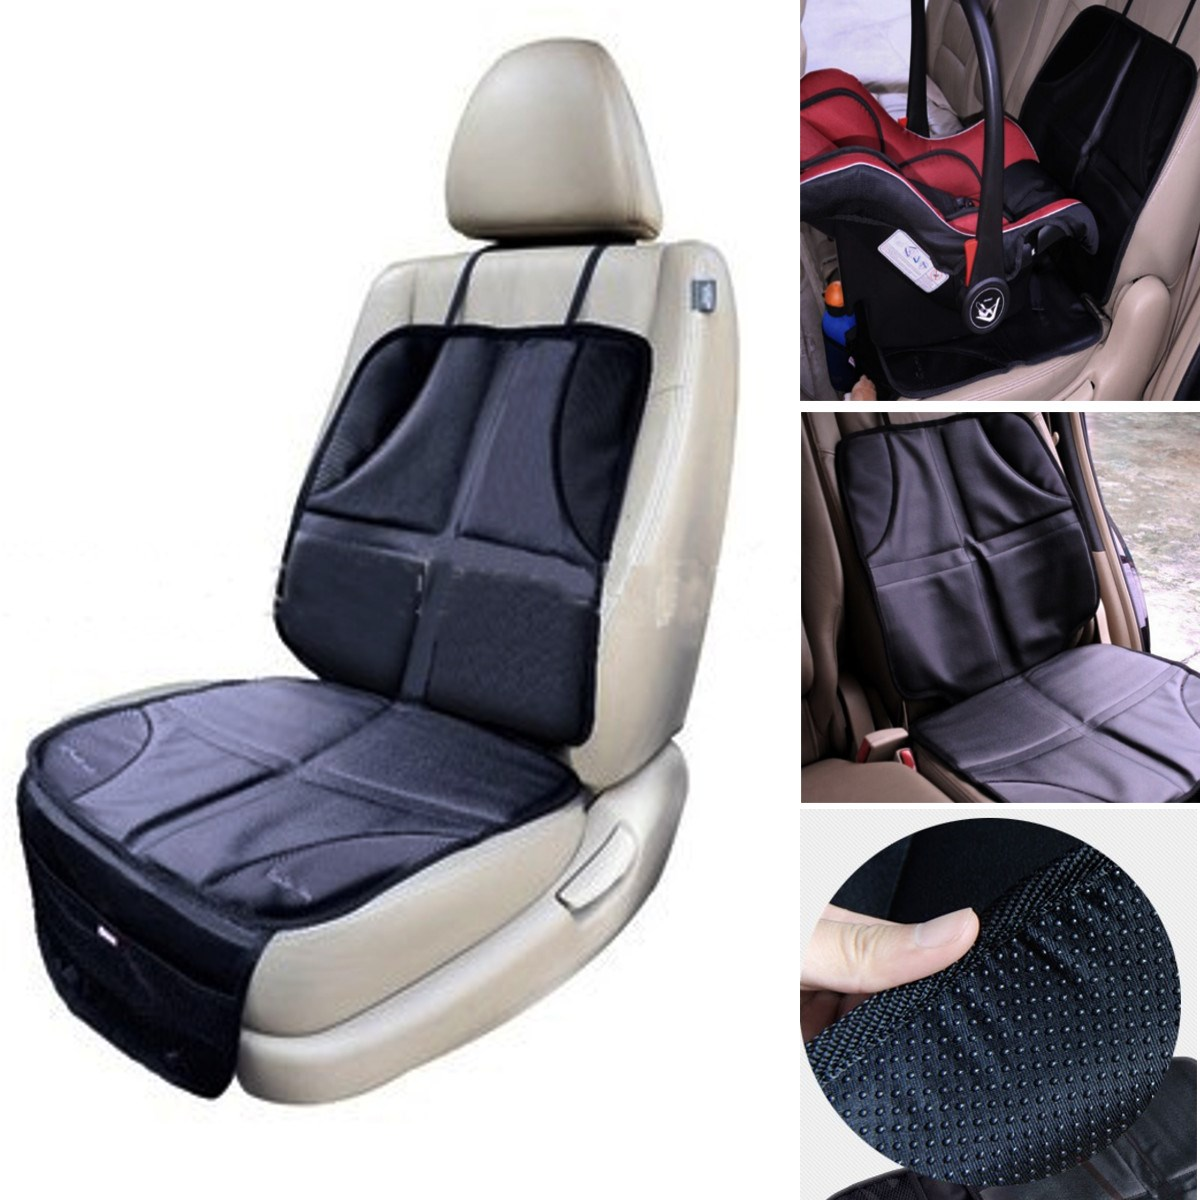 New Car Auto Baby Infant Child Seat Saver Easy Clean Protector Safety Anti Slip Cushion Cover(China (Mainland))